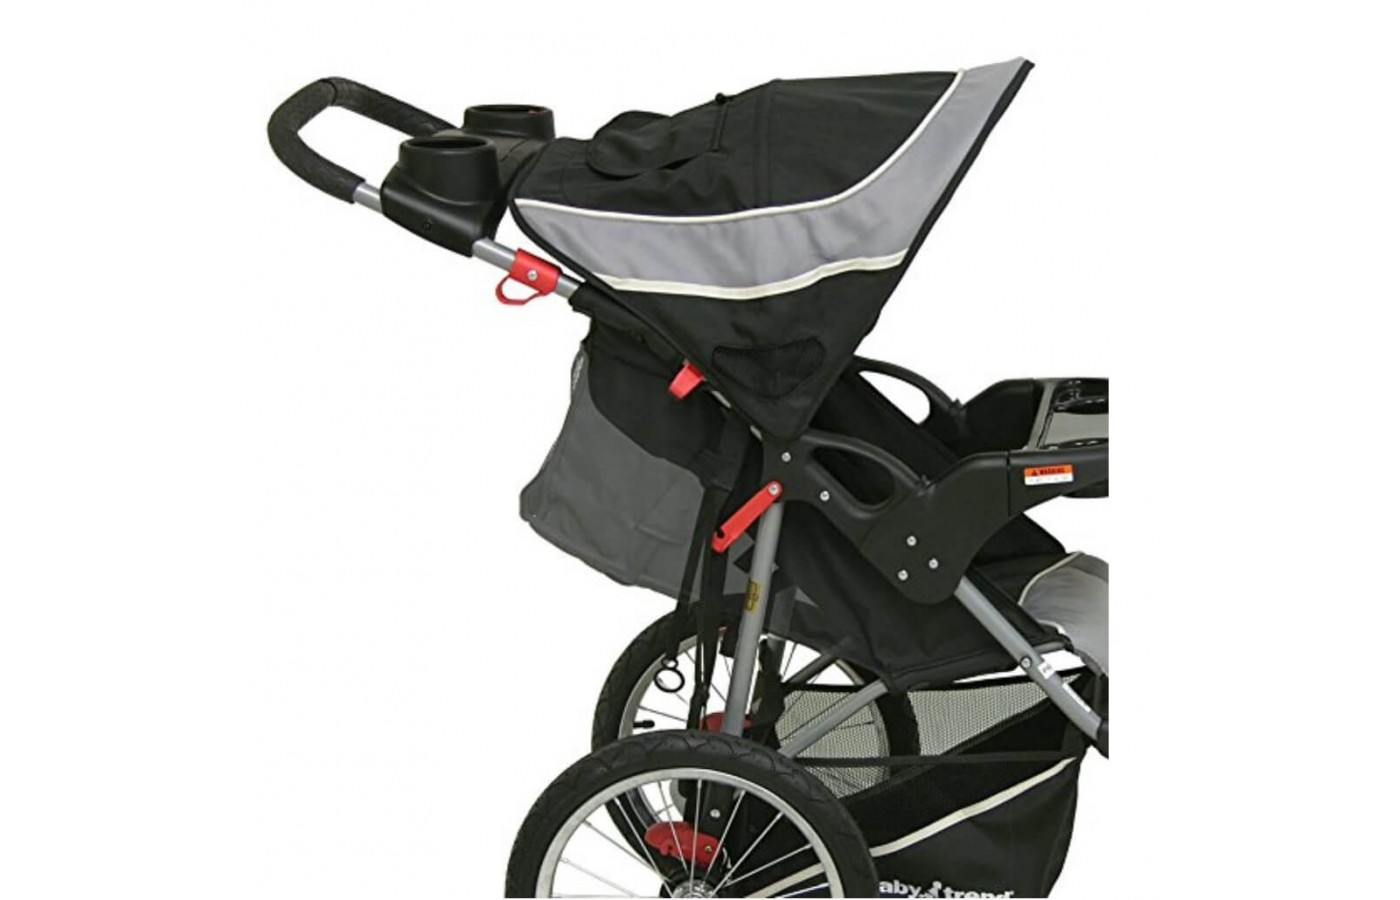 Baby Trend Expedition Jogger Stroller side